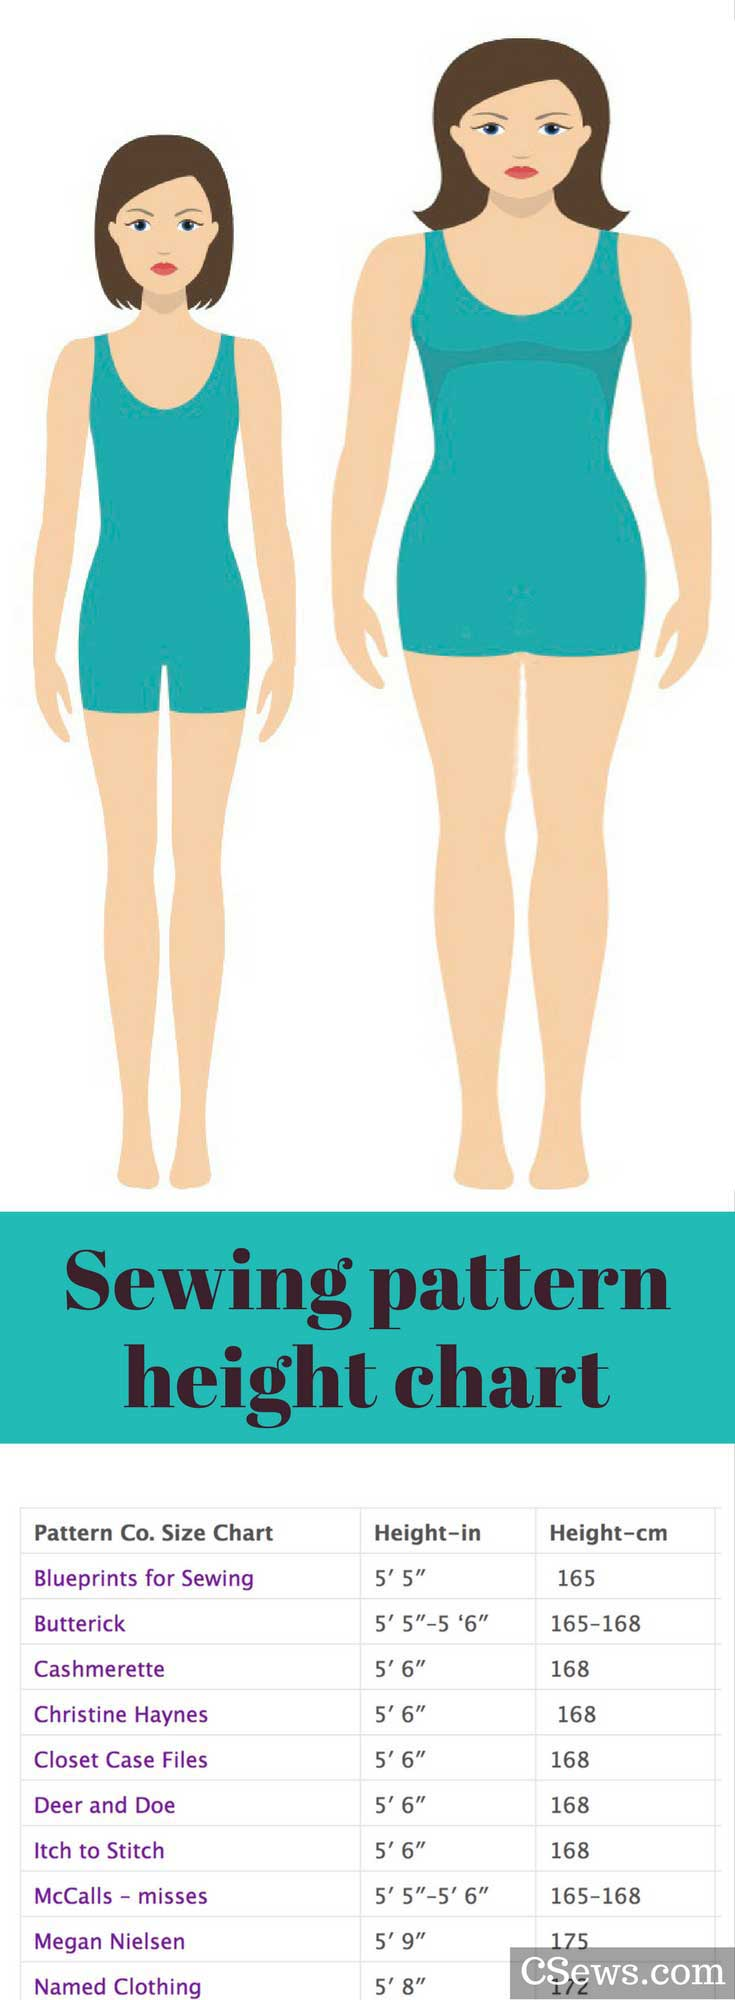 Sewing pattern height - chart listing Big Four and indie pattern heights (Christine Haynes, Closet Case Files, Deer and Doe, Named, Megan Nielsen, Papercut, Paprika, Style Arc, and more)